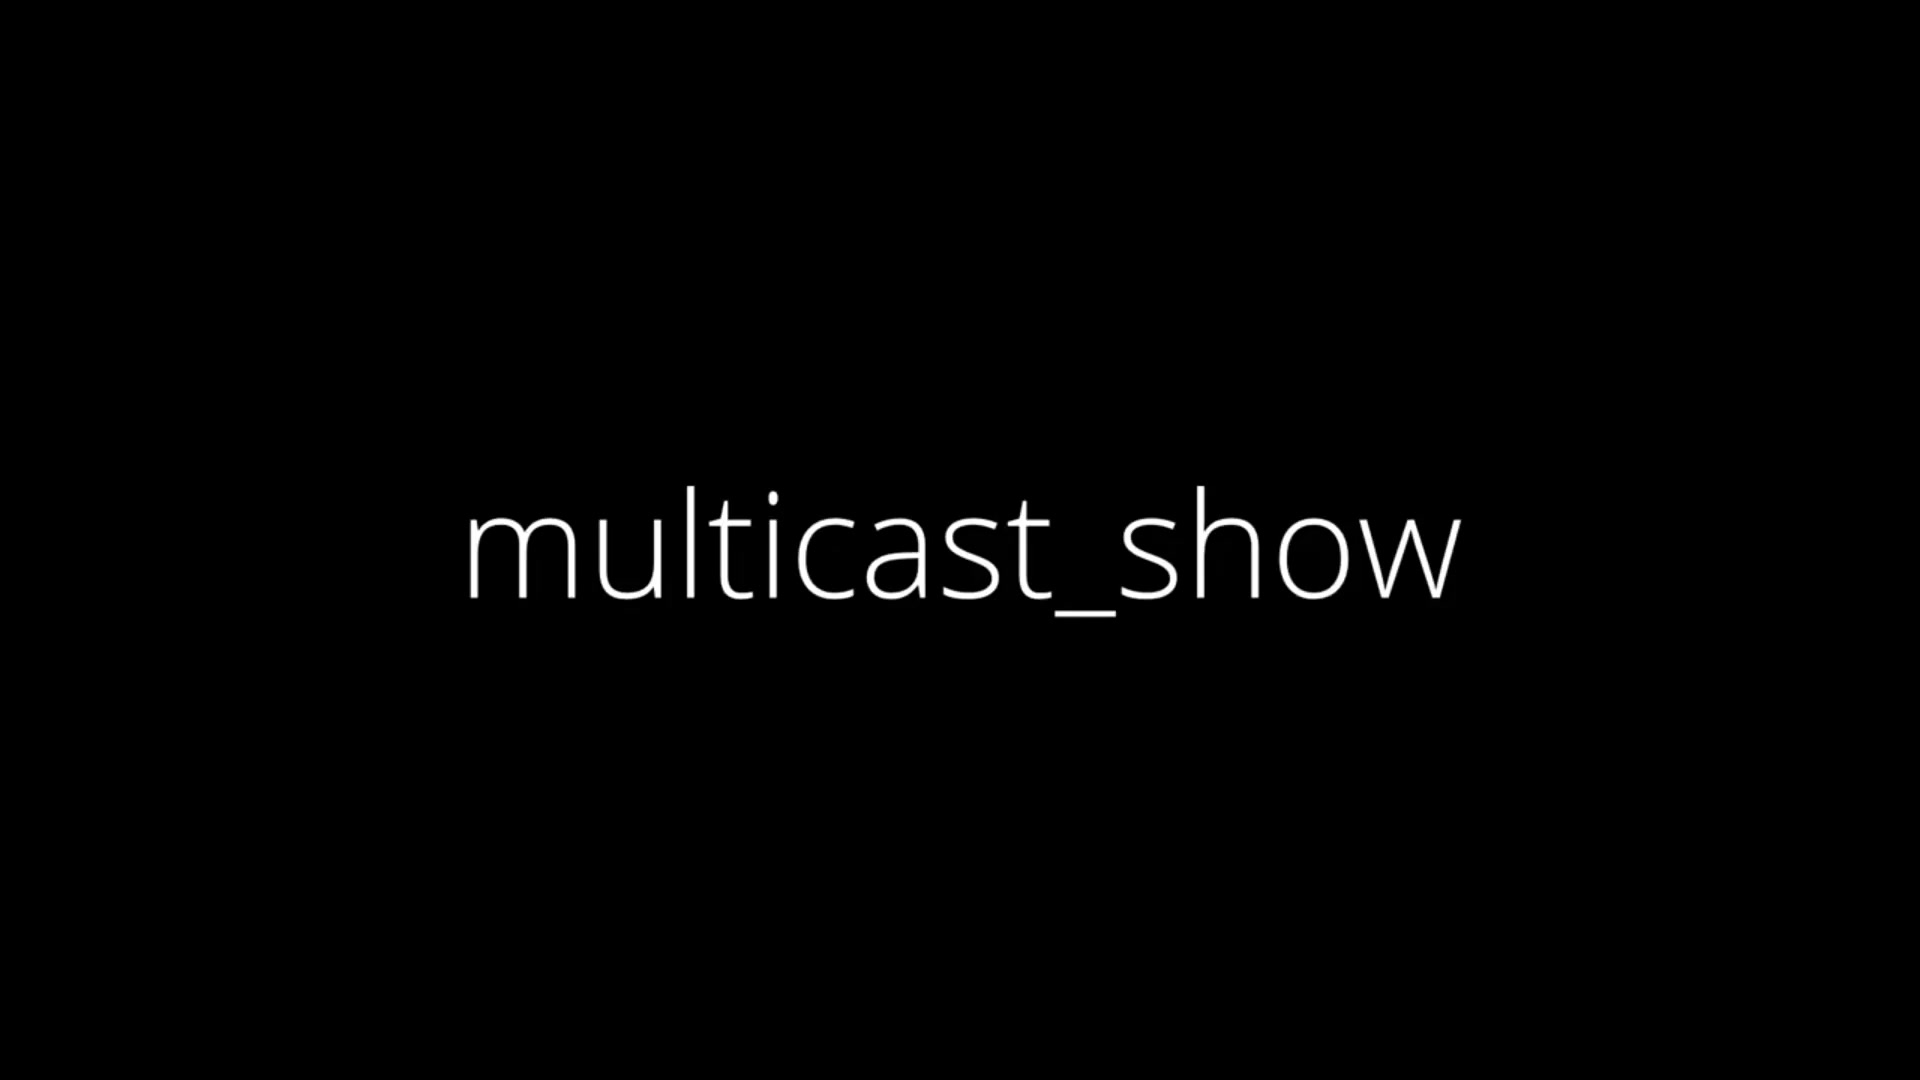 The Multicast Show